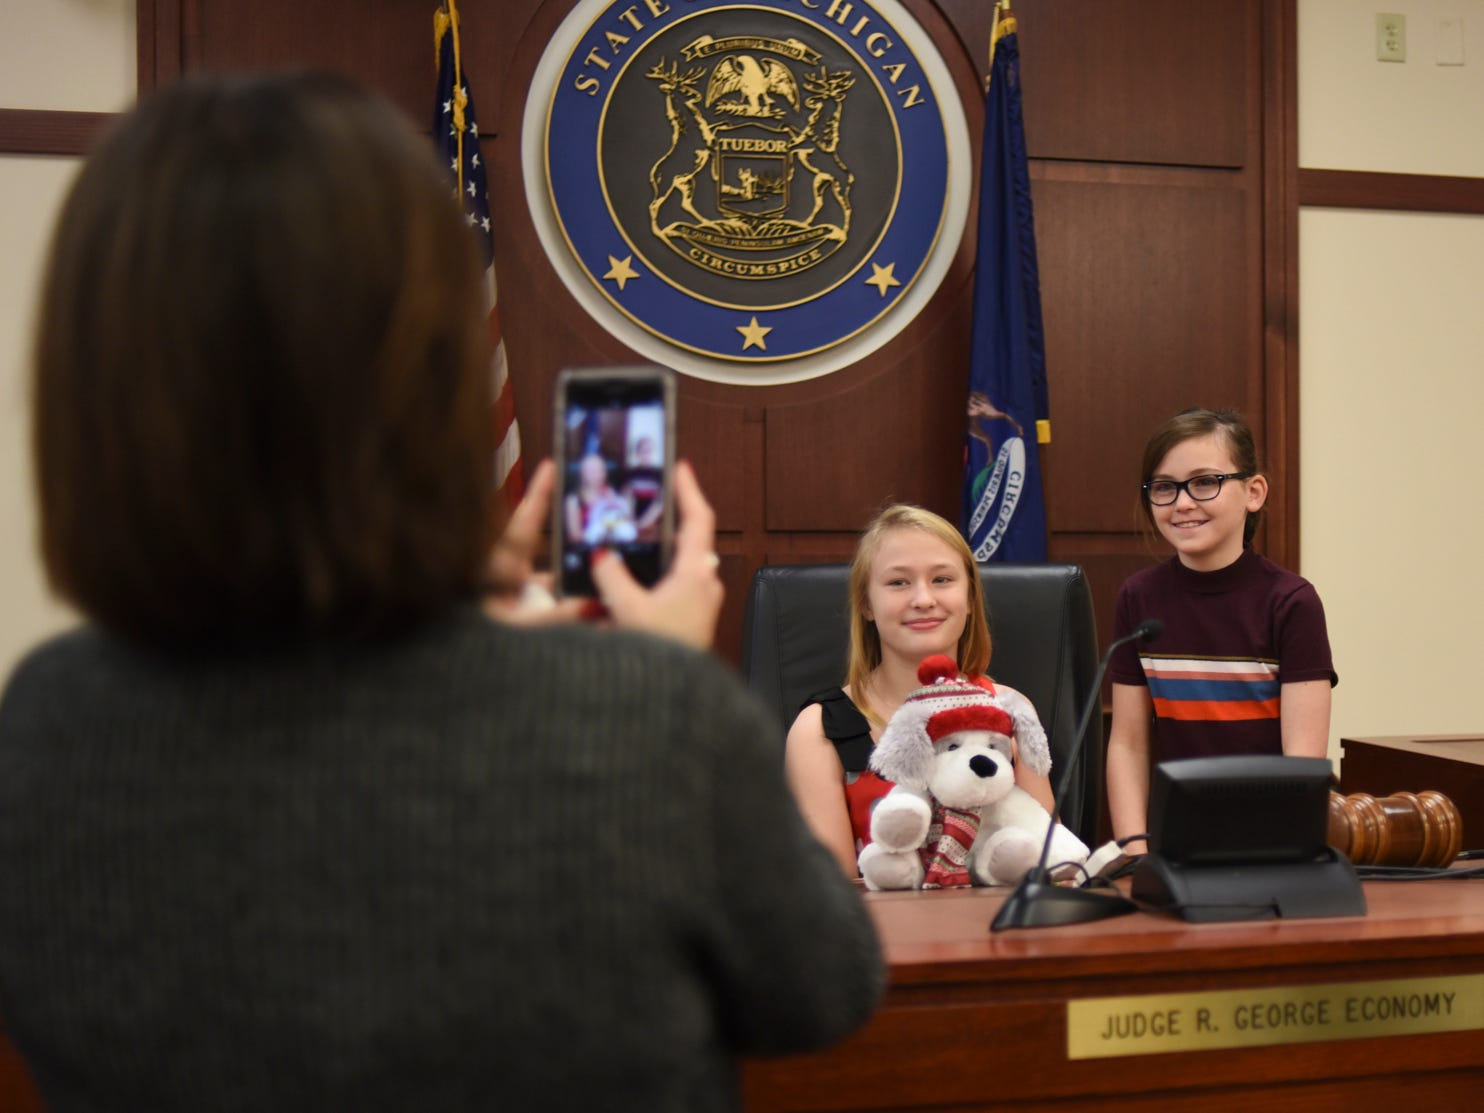 Ava Miller, 10, middle, gets her picture taken with friend Lucy Rose Boland, 9,  while seated at Ingham County Probate Judge George Economy's bench, Tuesday, Dec. 18, 2018, at Veterans Memorial Courthouse in Lansing.  Economy ordered Ava's adoption official.   He has done adoption week 32 of his 33 years on the bench.